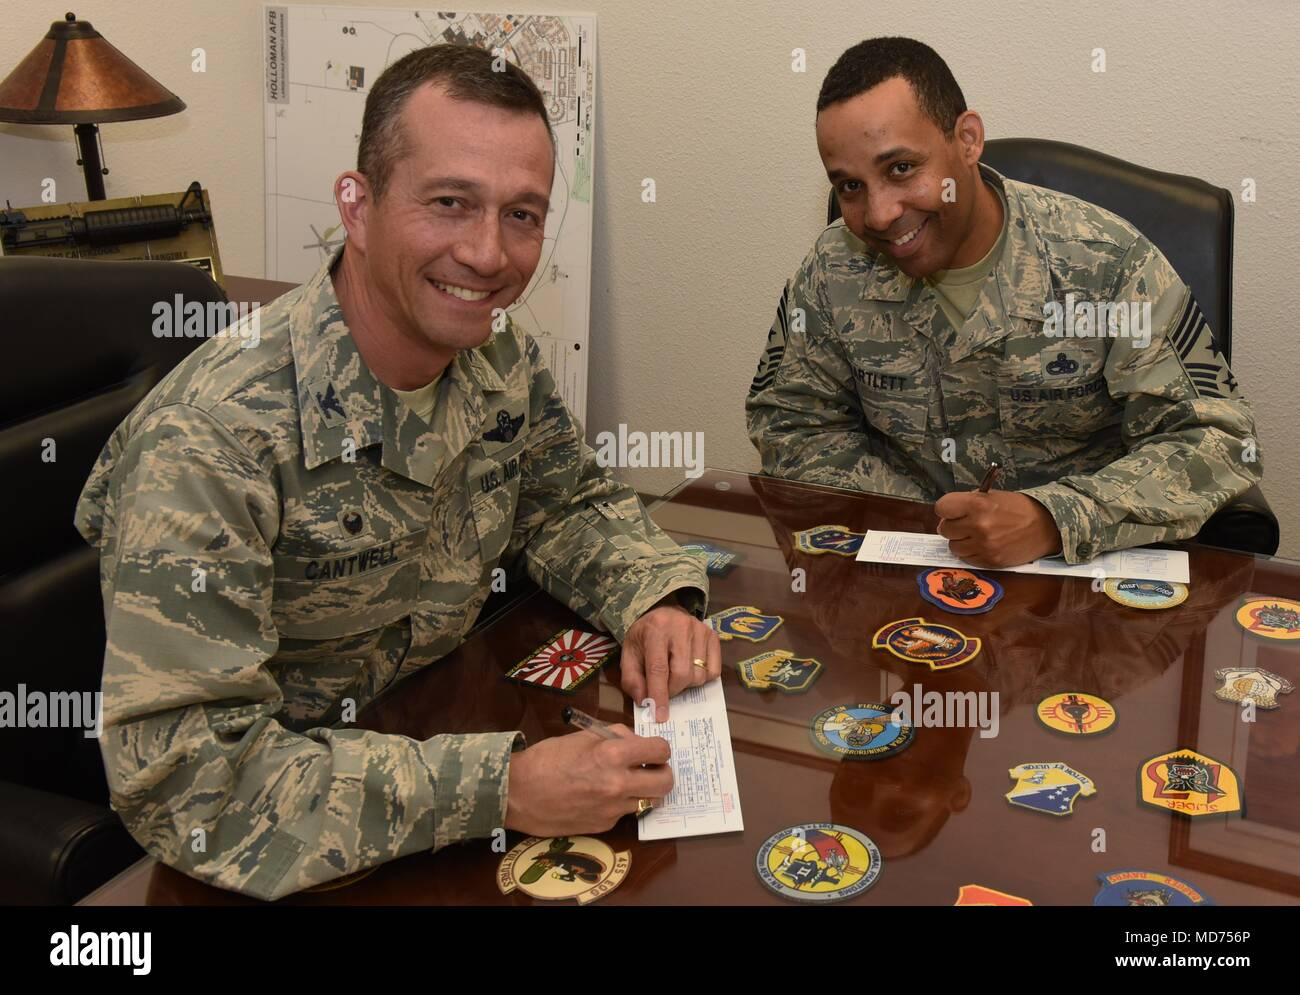 Col. Houston Cantwell, 49th Wing commander, and Chief Master Sgt. Barrington Bartlett, 49th Wing command chief, sign up to make a donation to the Air Force Assistance Fund at Holloman Air Force Base, N.M., March 26, 2018. The four charities that are involved in AFAF are the Air Force Aid Society, General and Mrs. Curtis E. LeMay Foundation, the Air Force Villages, and the Air Force Enlisted Village. (U.S. Air Force photo by Staff Sgt. Timothy Young) - Stock Image